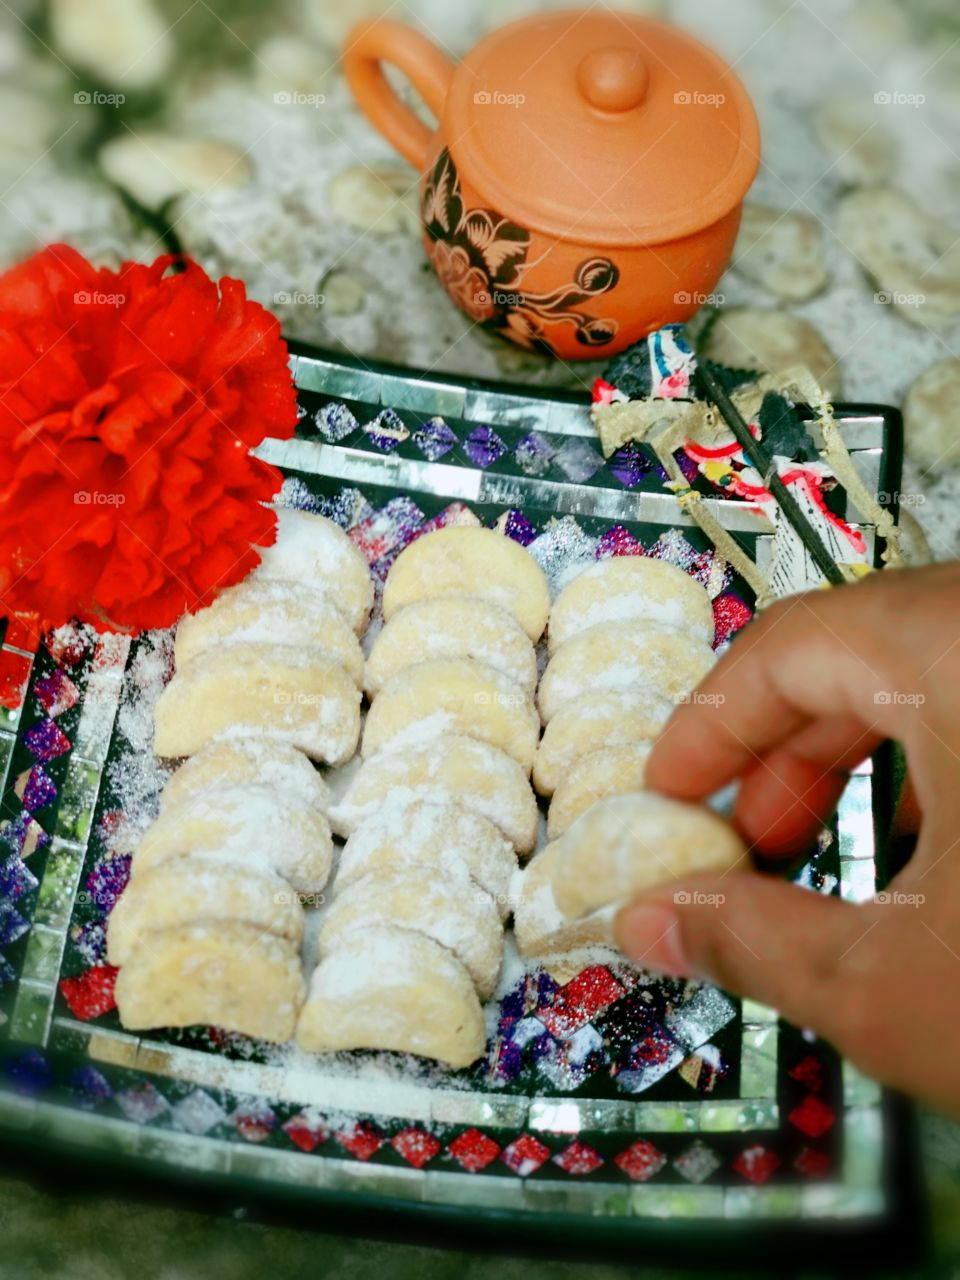 snow cookies Indonesia traditional